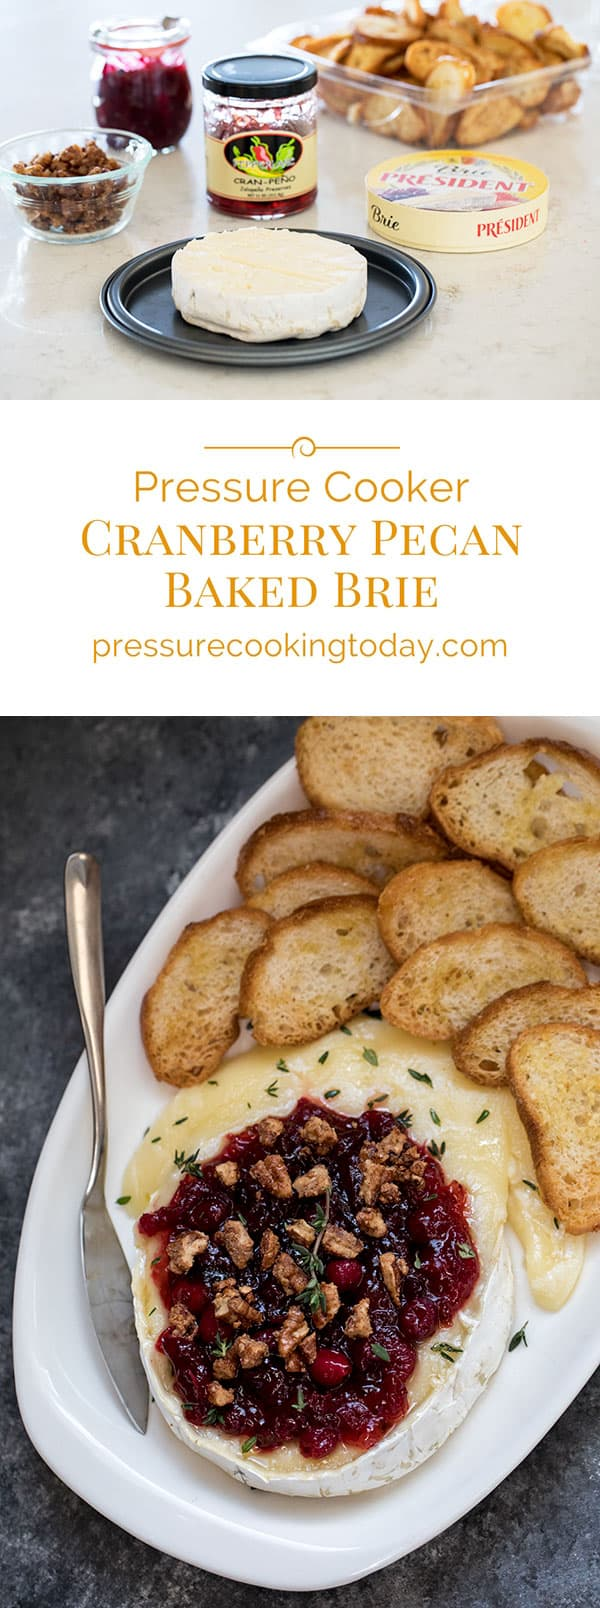 Pressure Cooker Cranberry Pecan Baked Brie photo collage